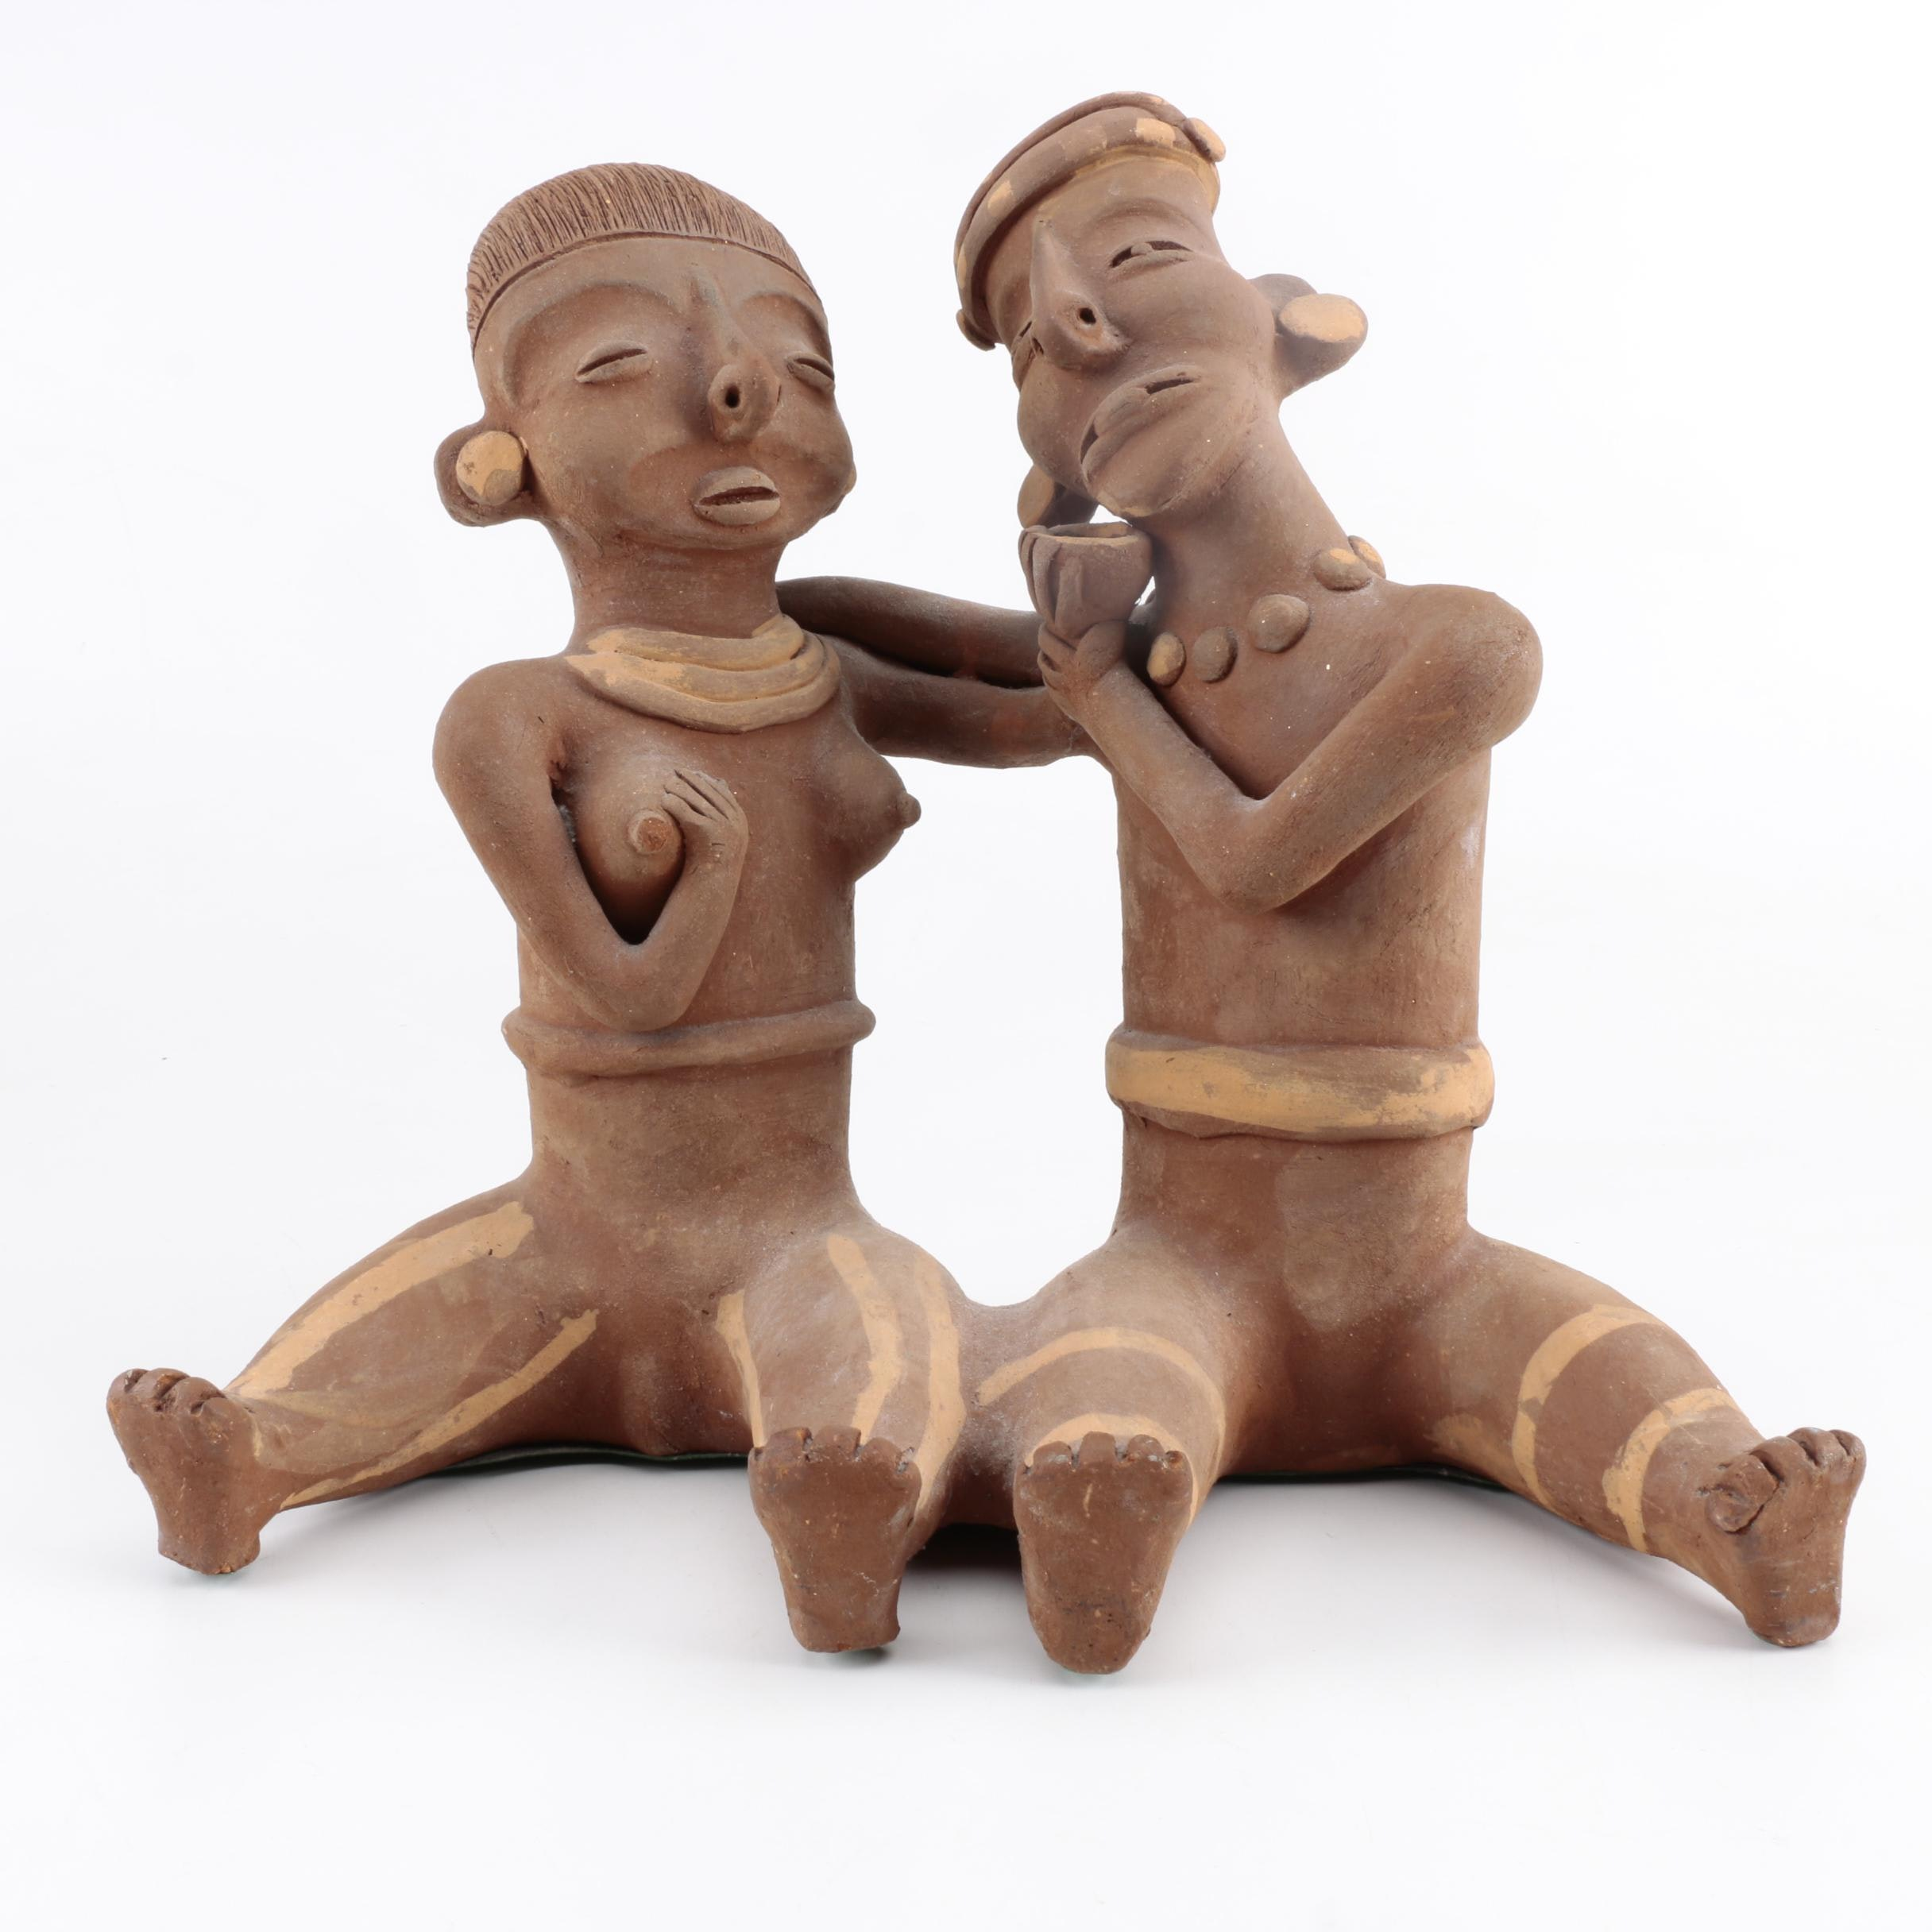 Aftrican Terra Cotta Sculpture of a Woman and Man